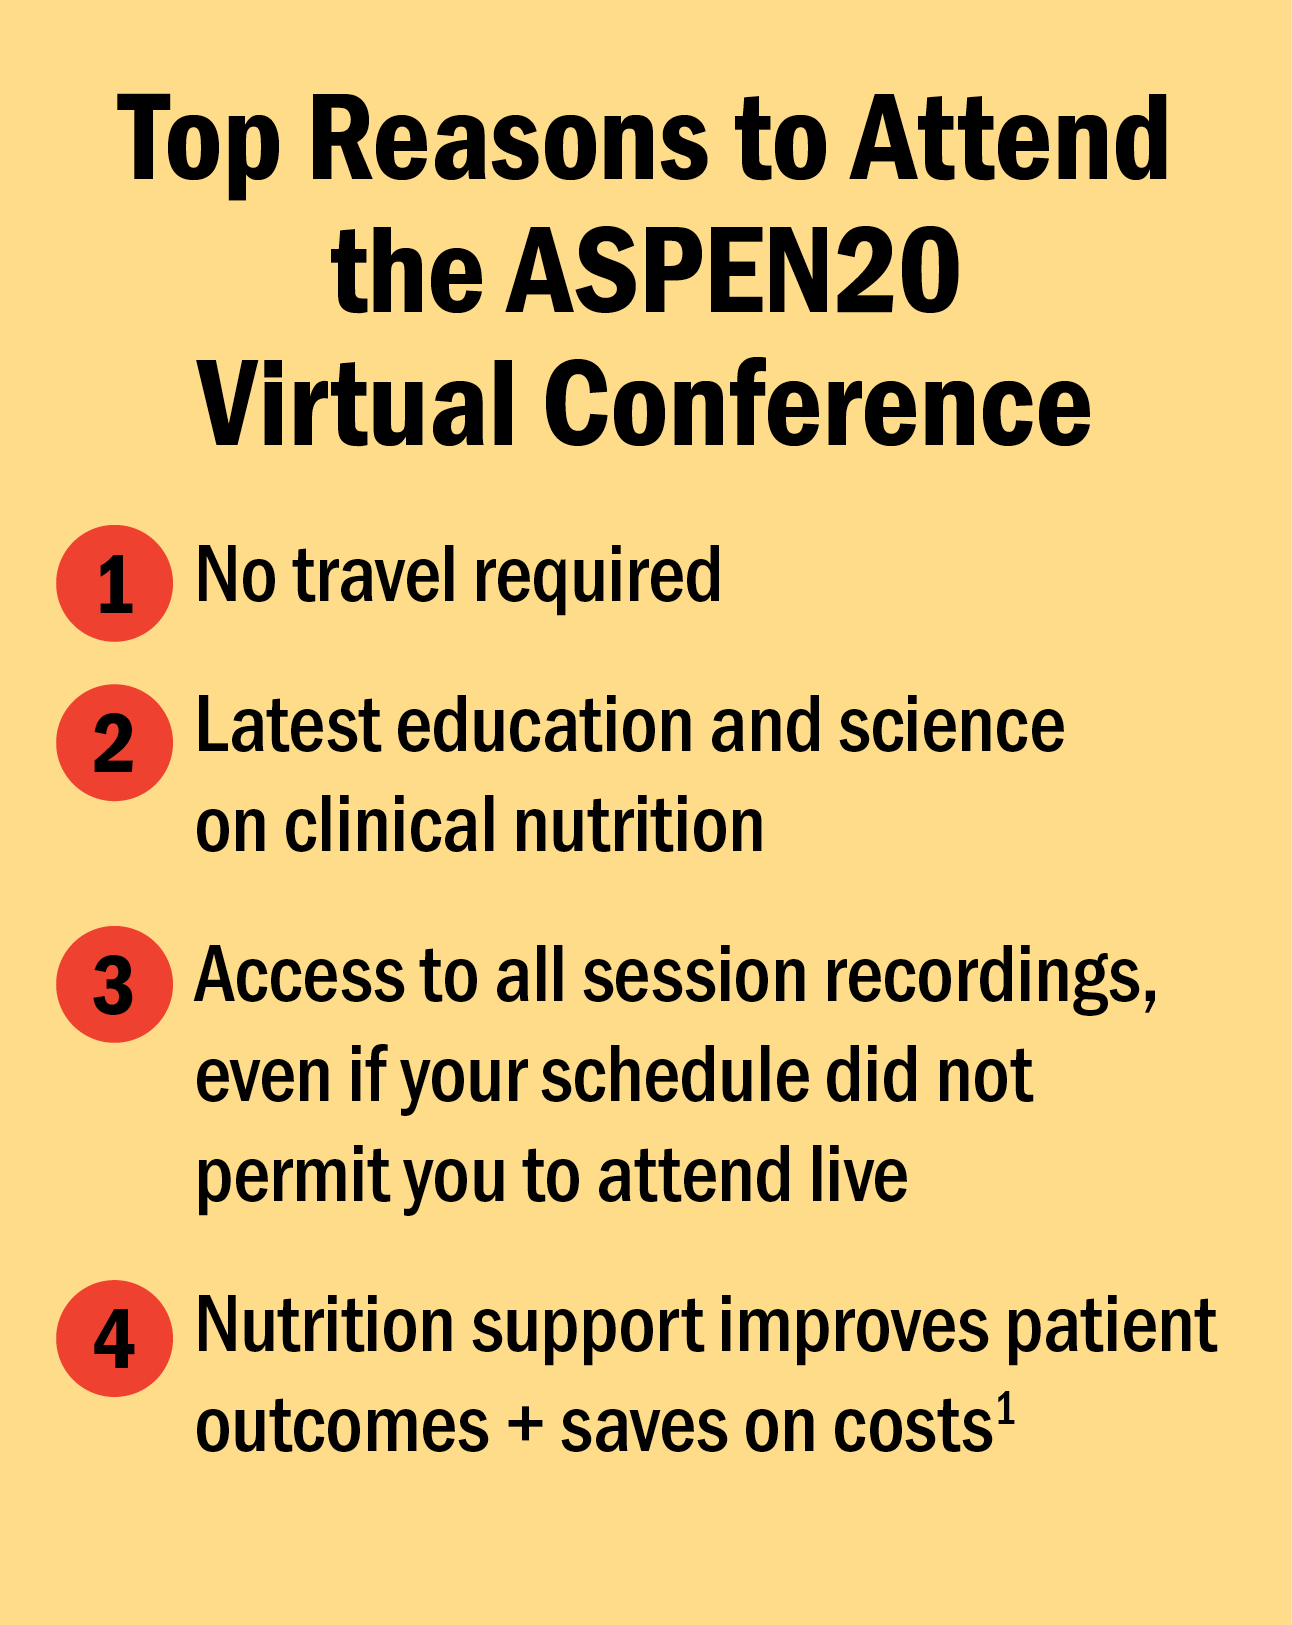 Top Reasons to Attend ASPEN20